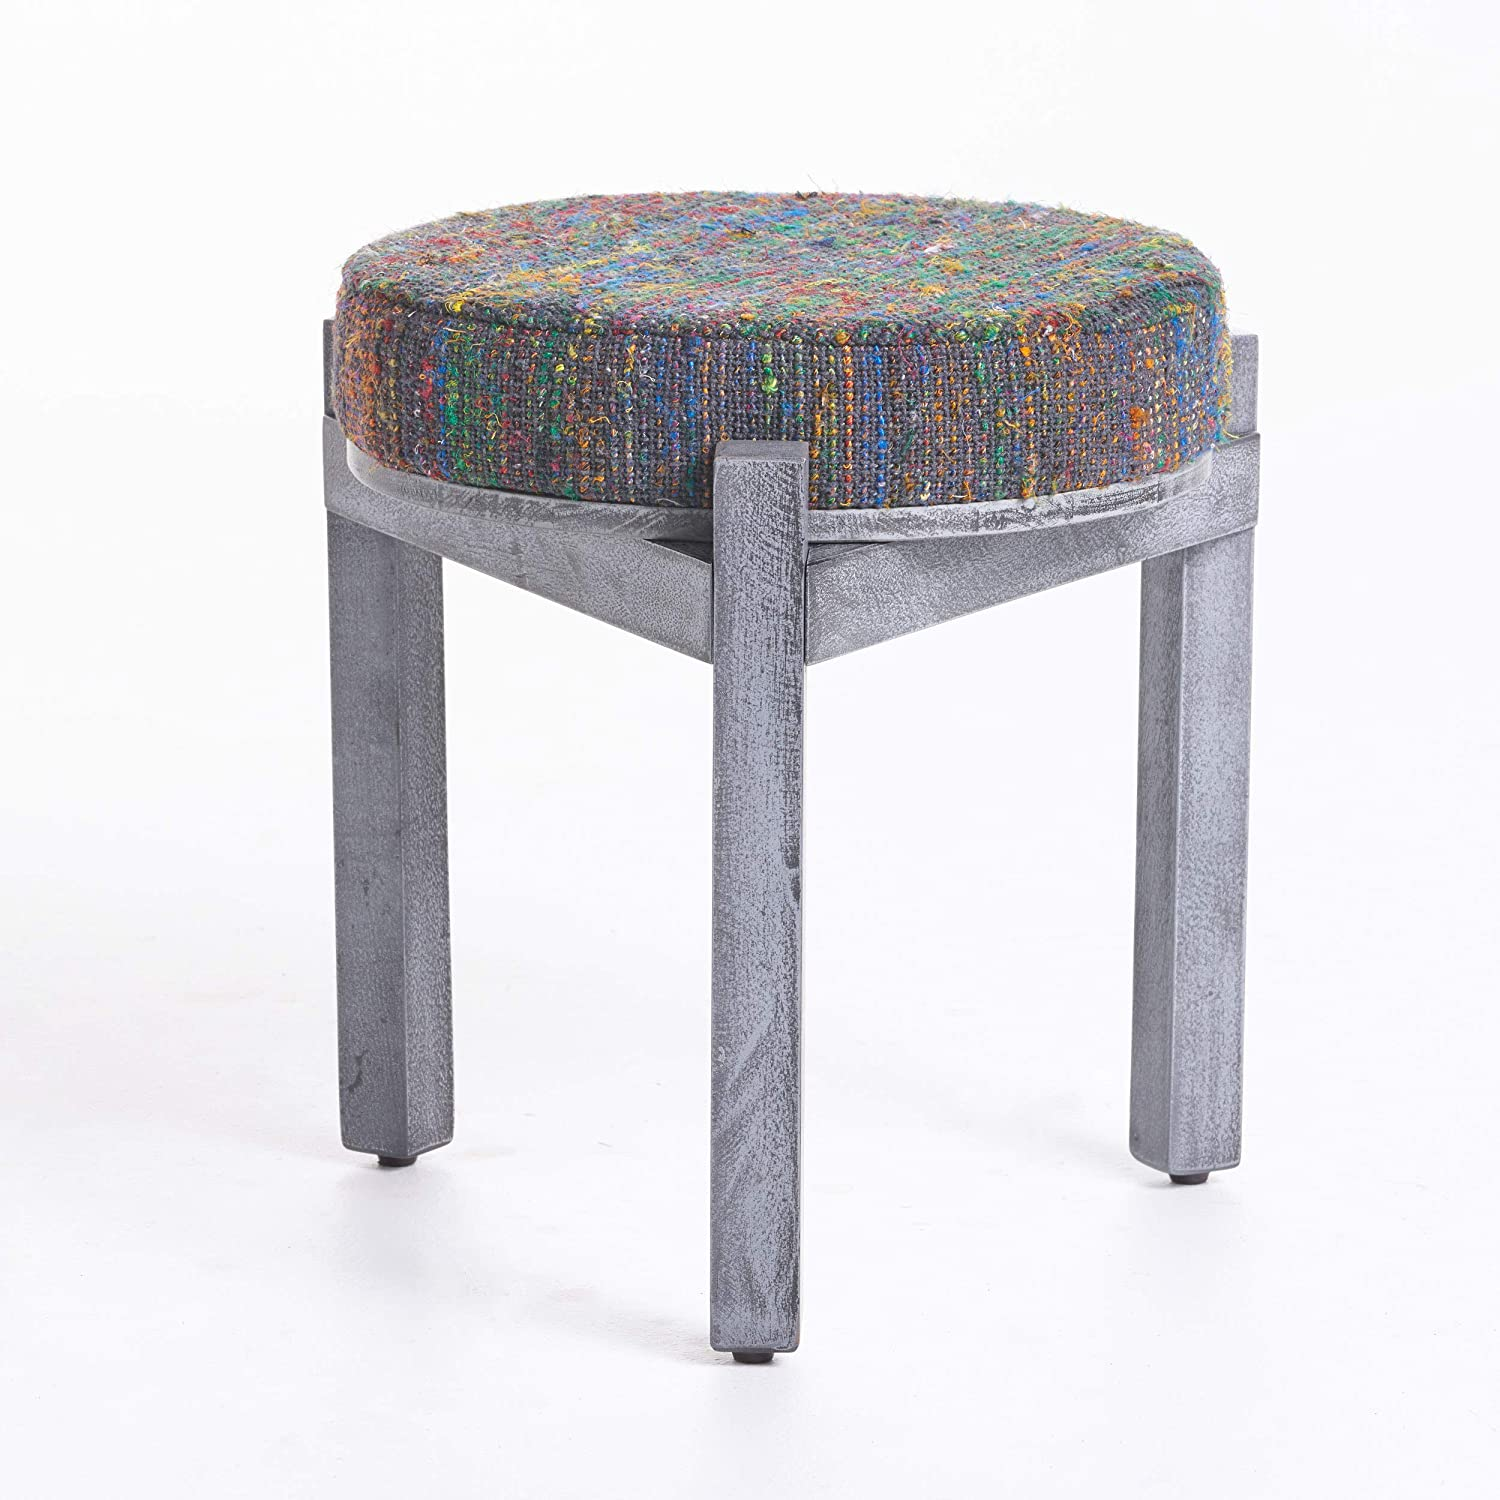 Christopher Knight Home Dashiell Fabric Stool with Mango Wood Frame, Multi / Grey